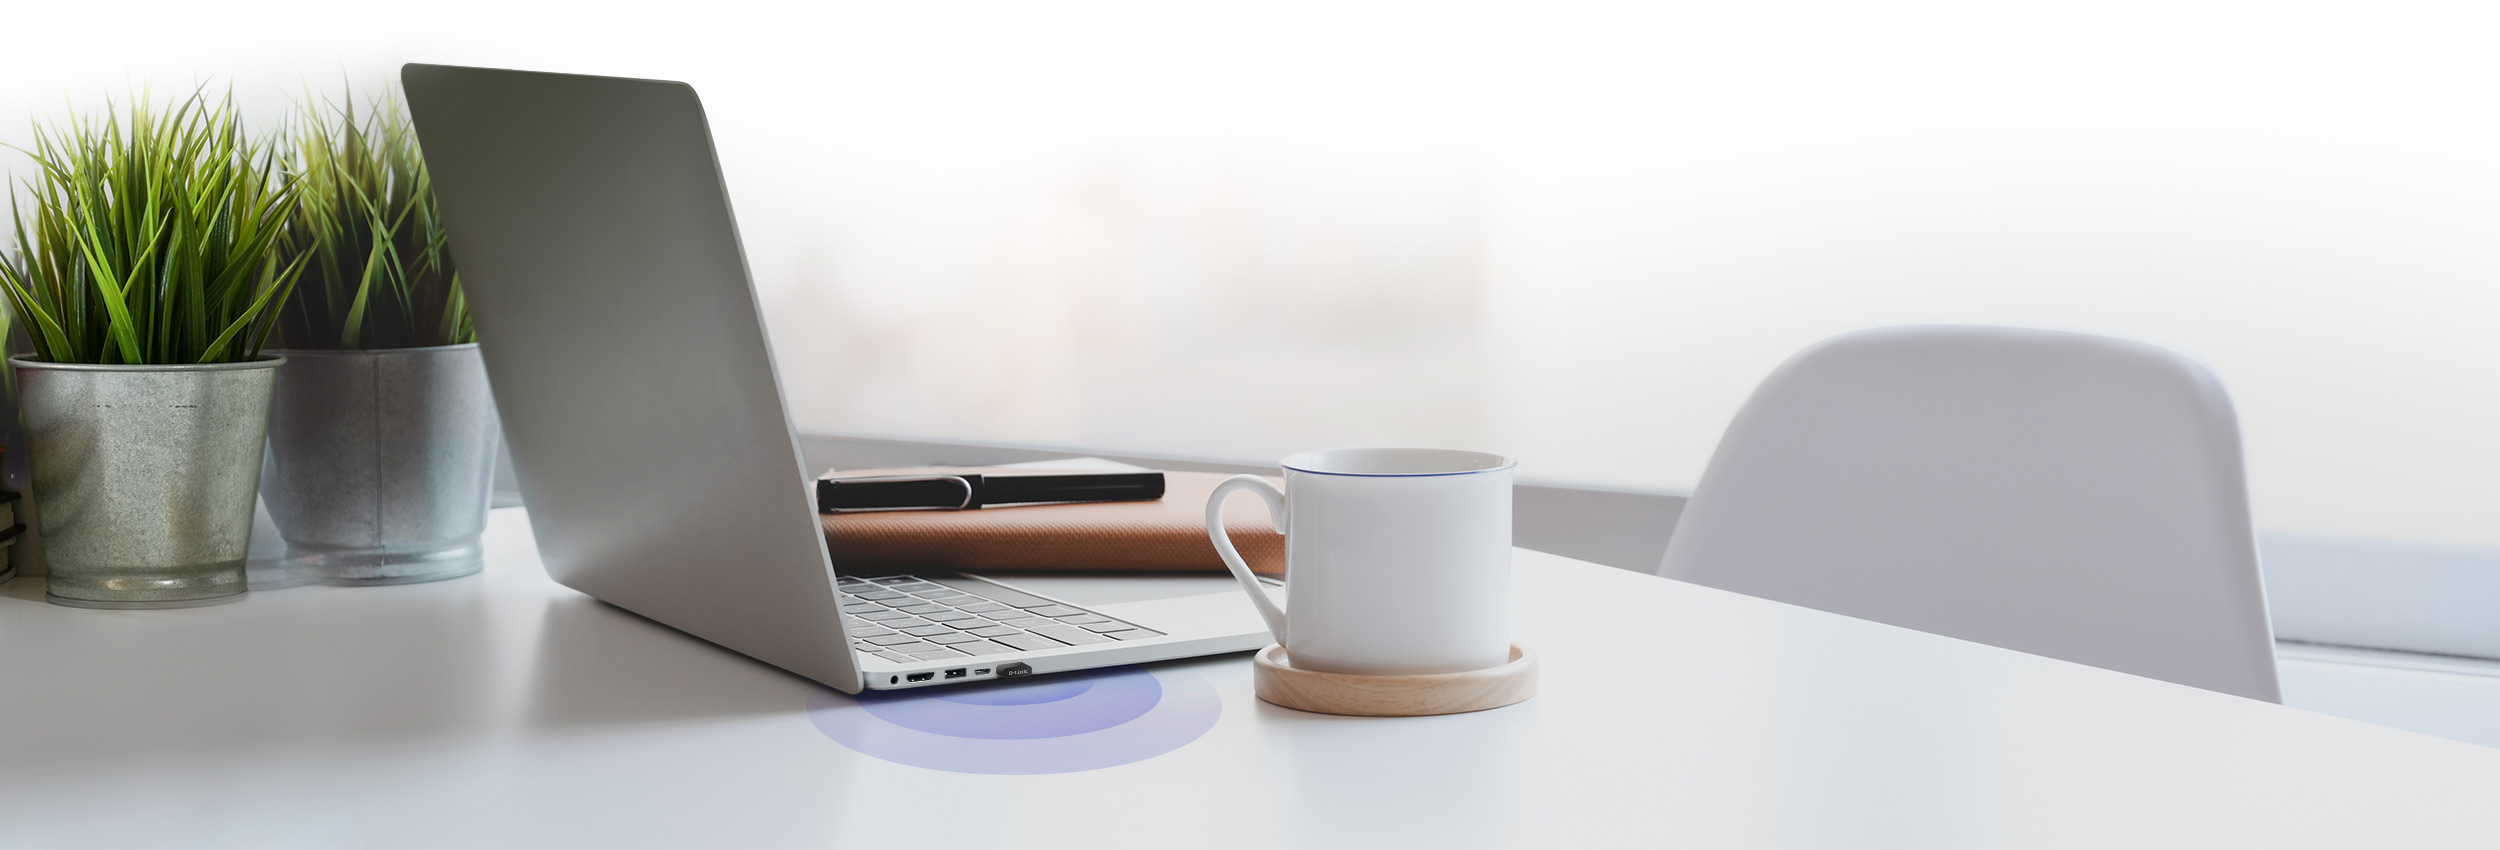 DWA-181 AC1300 MU-MIMO Wi-Fi Nano USB Adapter  connected to a laptop beside coffee cup on a table